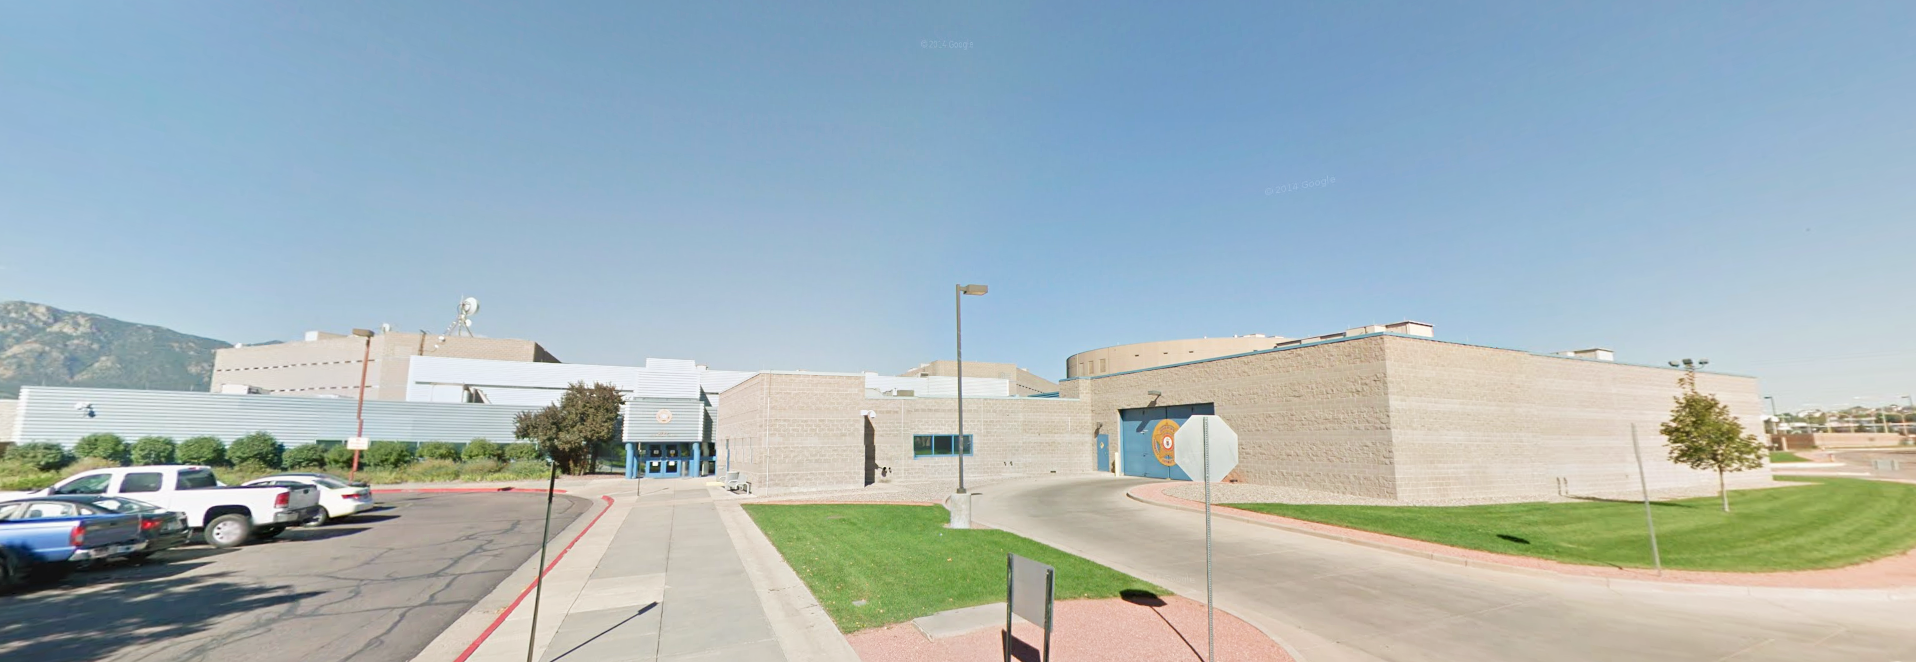 El Paso County Jail (El Paso County Criminal Justice Center) (United States of America)